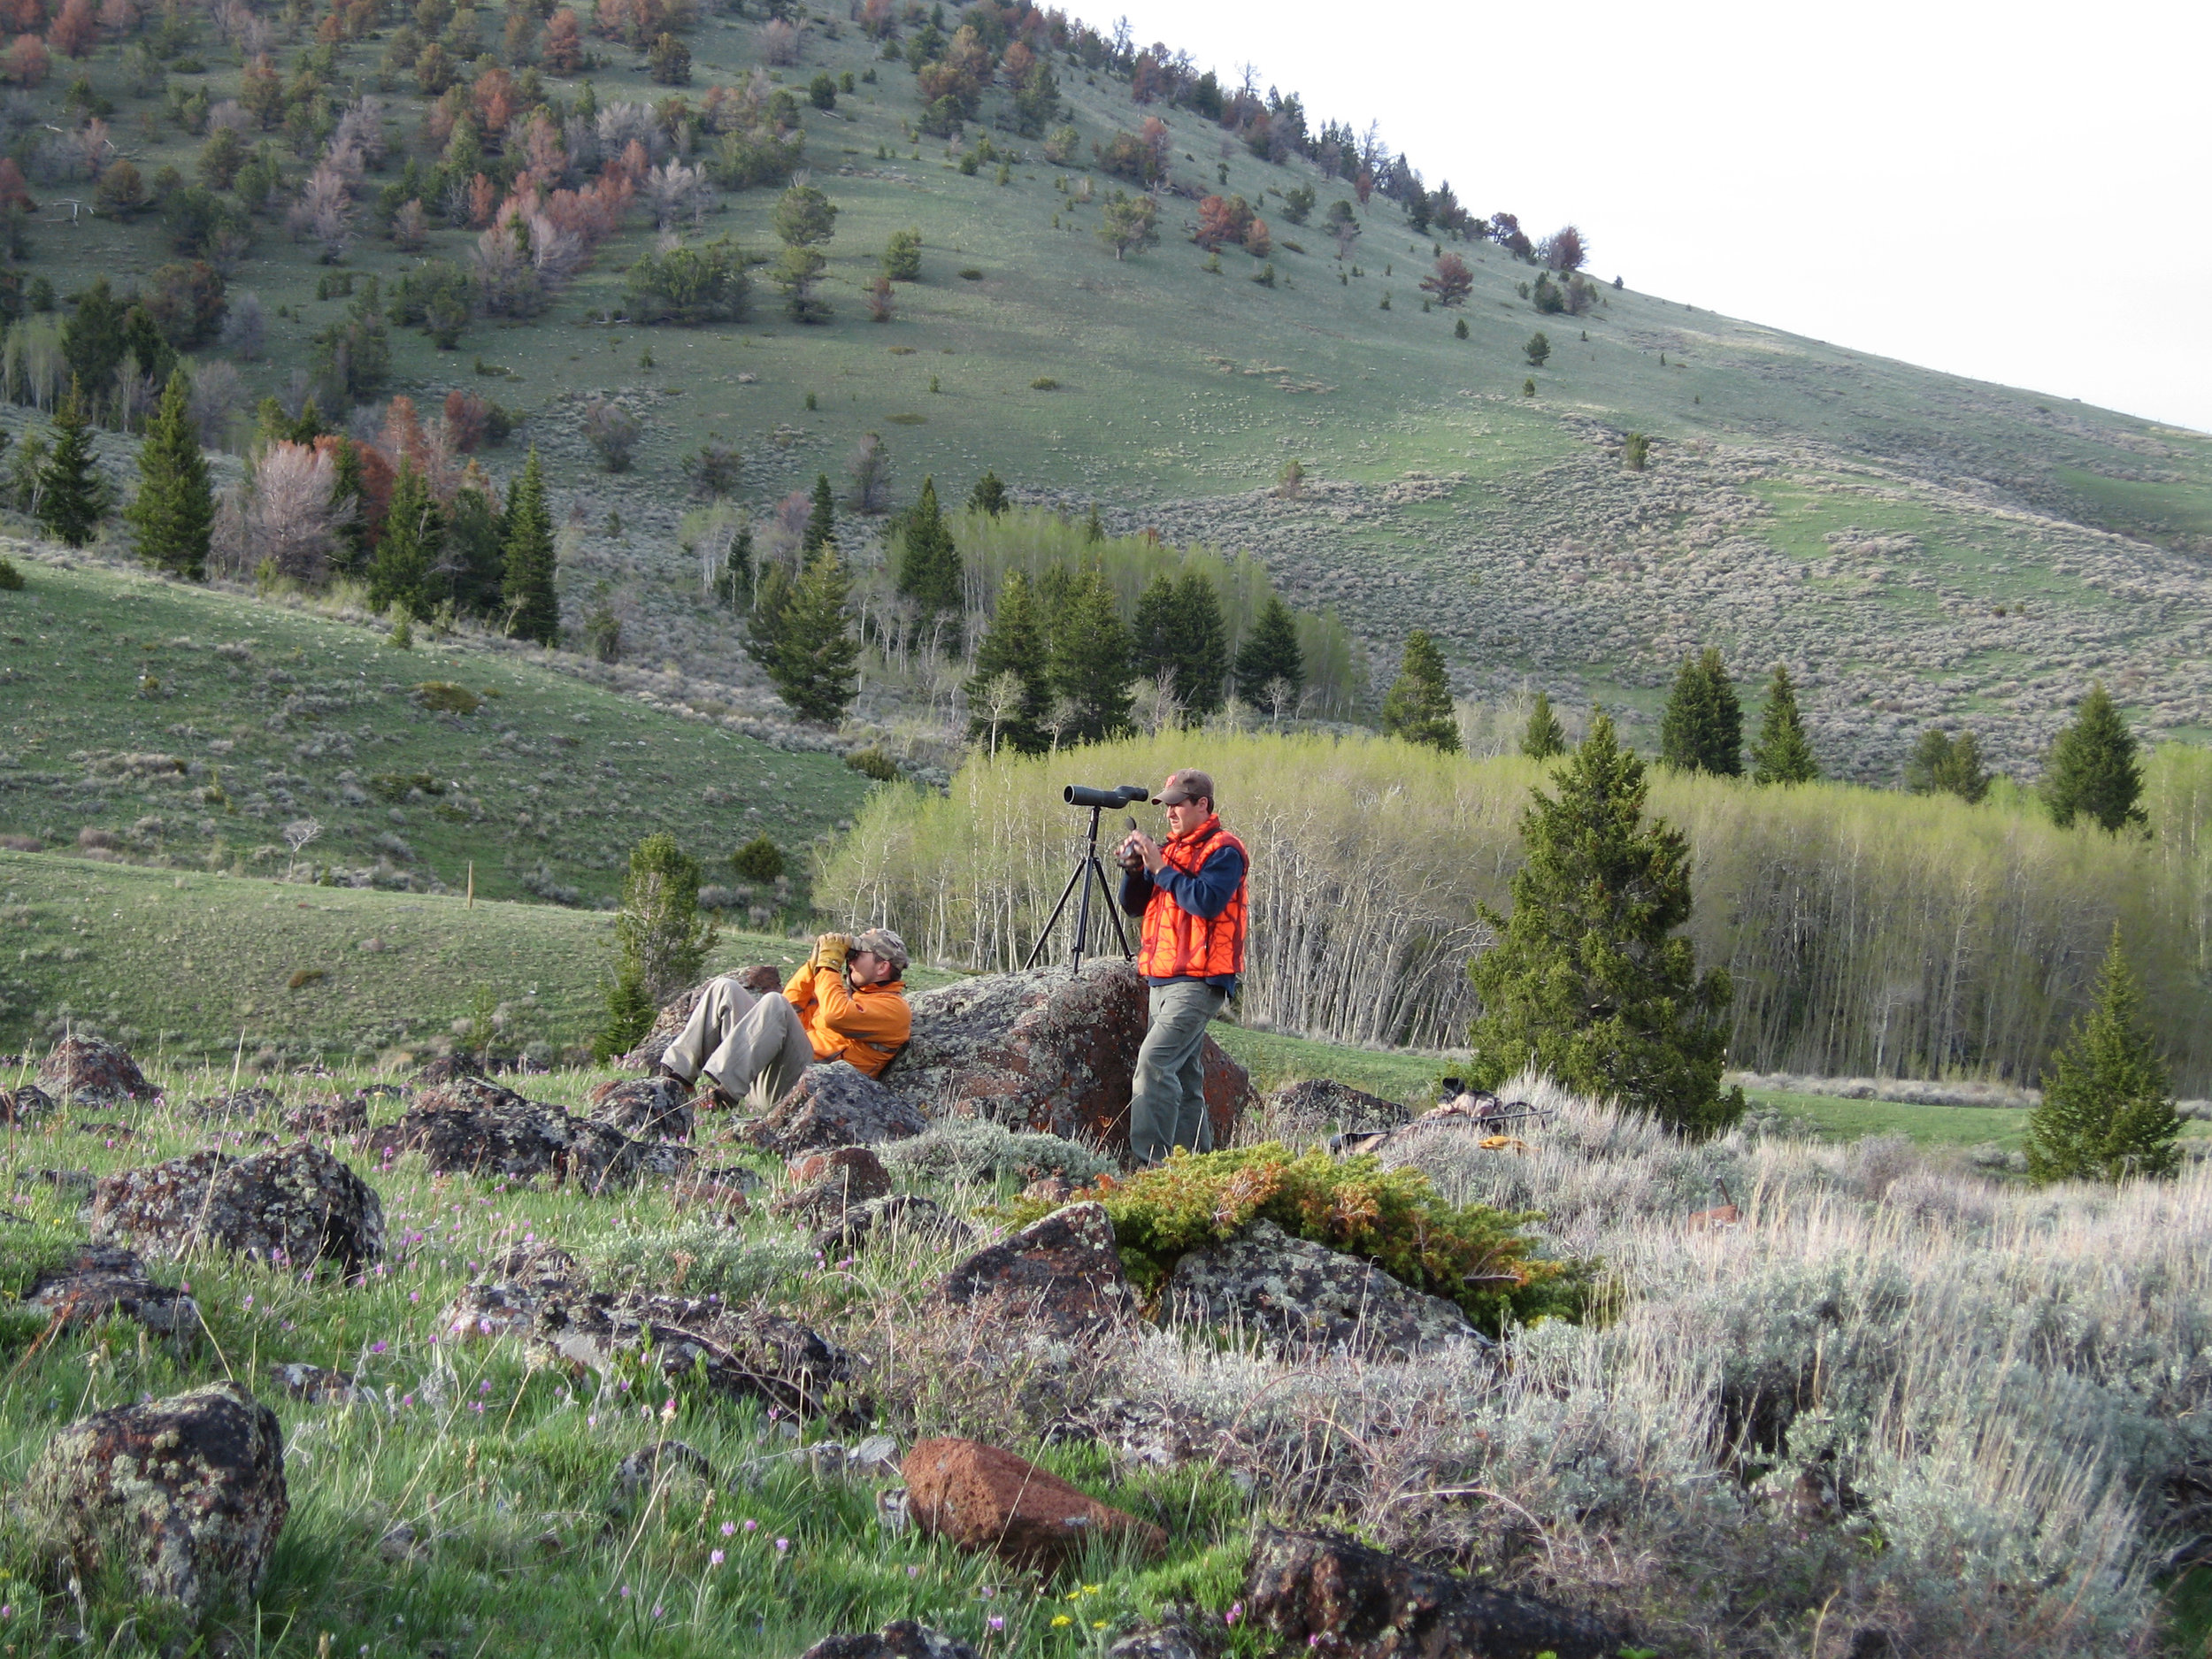 Scott Falagan and Mark Edgell glassing for Montana high country bears.